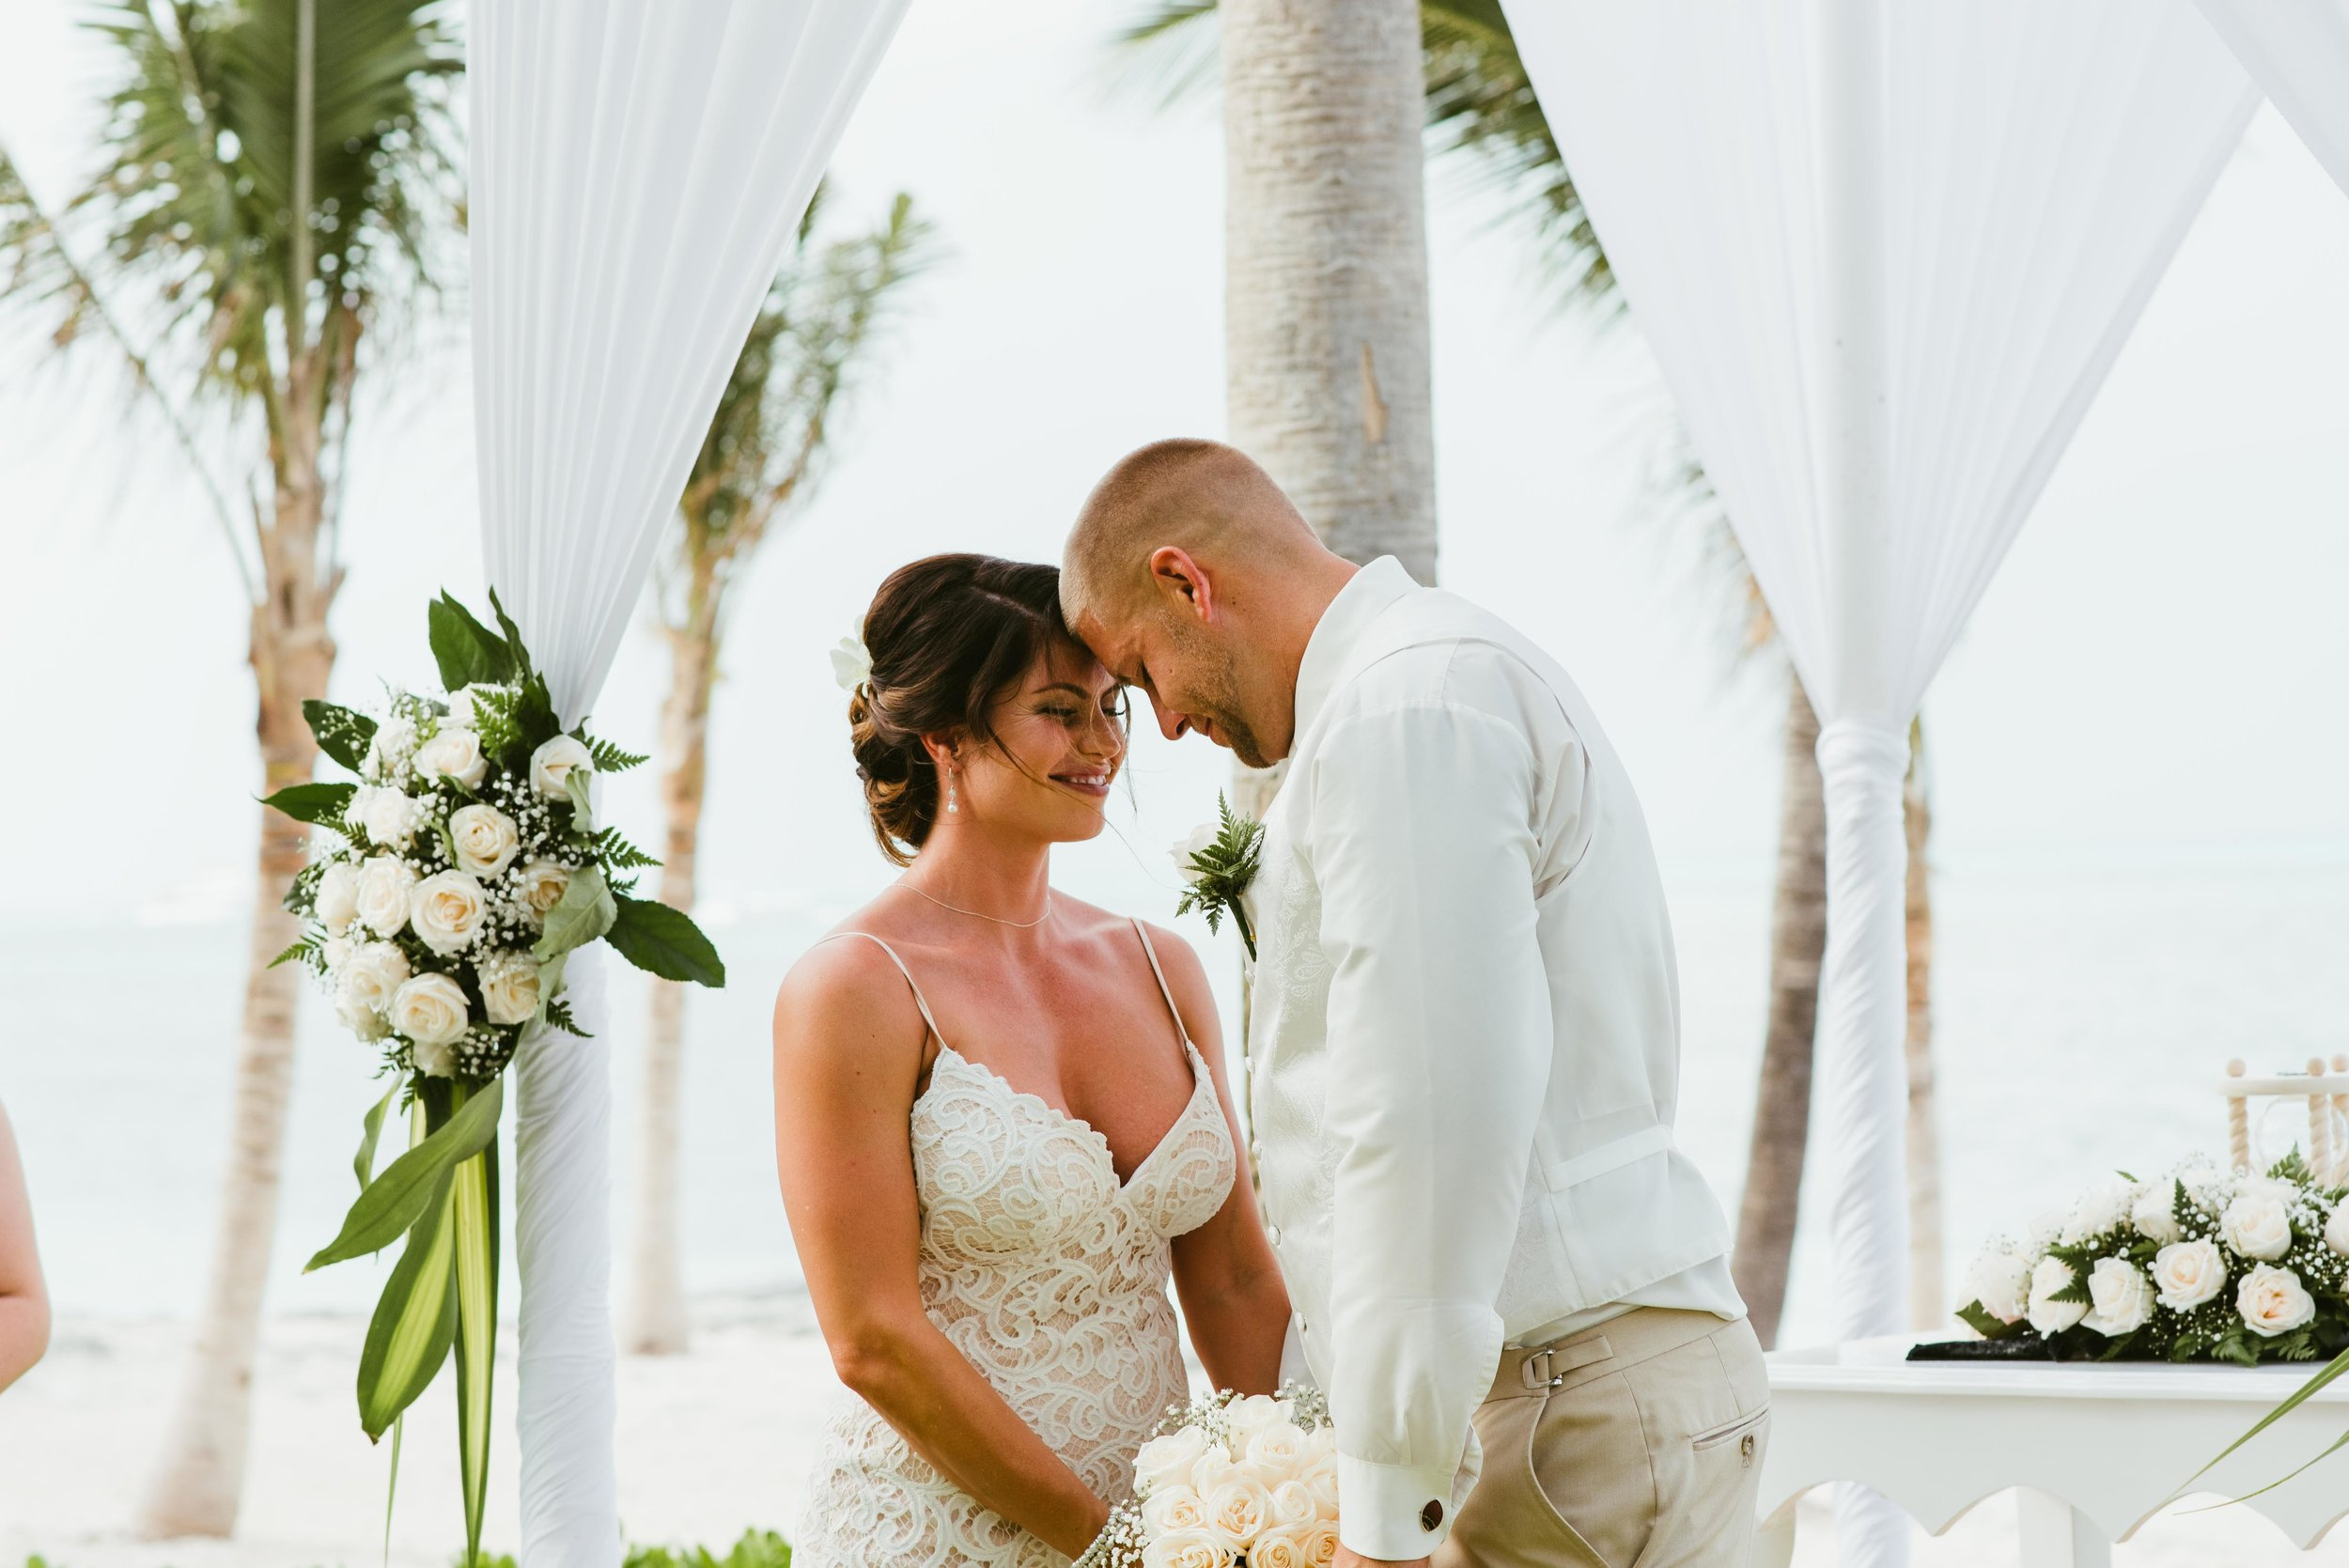 Beach-Wedding-Photography-Cancun-Elopement-Destination-Elopement-Photography-Destination-Beach-Wedding-+Costa-Rica-Wedding-Photography-Beach-Wedding-Photos-teresawoodhull-Cancun-Elopement-Beach-Wedding-+Sunset-Beach-Wedding-Fotografia-de-bodas-Nicoya-Peninsula-Elopement-Photographer-Santa-Teresa-Elopement-Photographer-Adventure-elopement-photographer-Santa-Teresa-Wedding-Photographer-Adventure-Wedding-Boda-playa-santa-teresa-Adventure-Wedding-Photography-Adventure-Wedding-Photographer-Beach-Elopement-Beach-Elopement-Photos-maddie-mae-Beach-Elopement-Photographer-Destination-Elopement-Photographer-Sunset-Beach-Elopement-Mexico-wedding-photographer-cabo-wedding-photographer-mexico-wedding-mexico-destination-wedding-cancun-destination-wedding-cancun-elopement-photographer-playa-del-carmen-wedding-playa-del-carmen-destination-wedding-photographer-playa-del-carmen-wedding-photography-Nicoya-Peninsula-Wedding-Photography-Nicoya-Peninsula-Wedding-Photographer-Nicoya-Peninsula-Elopement-Photography-bride-and-groom-touching-foreheads